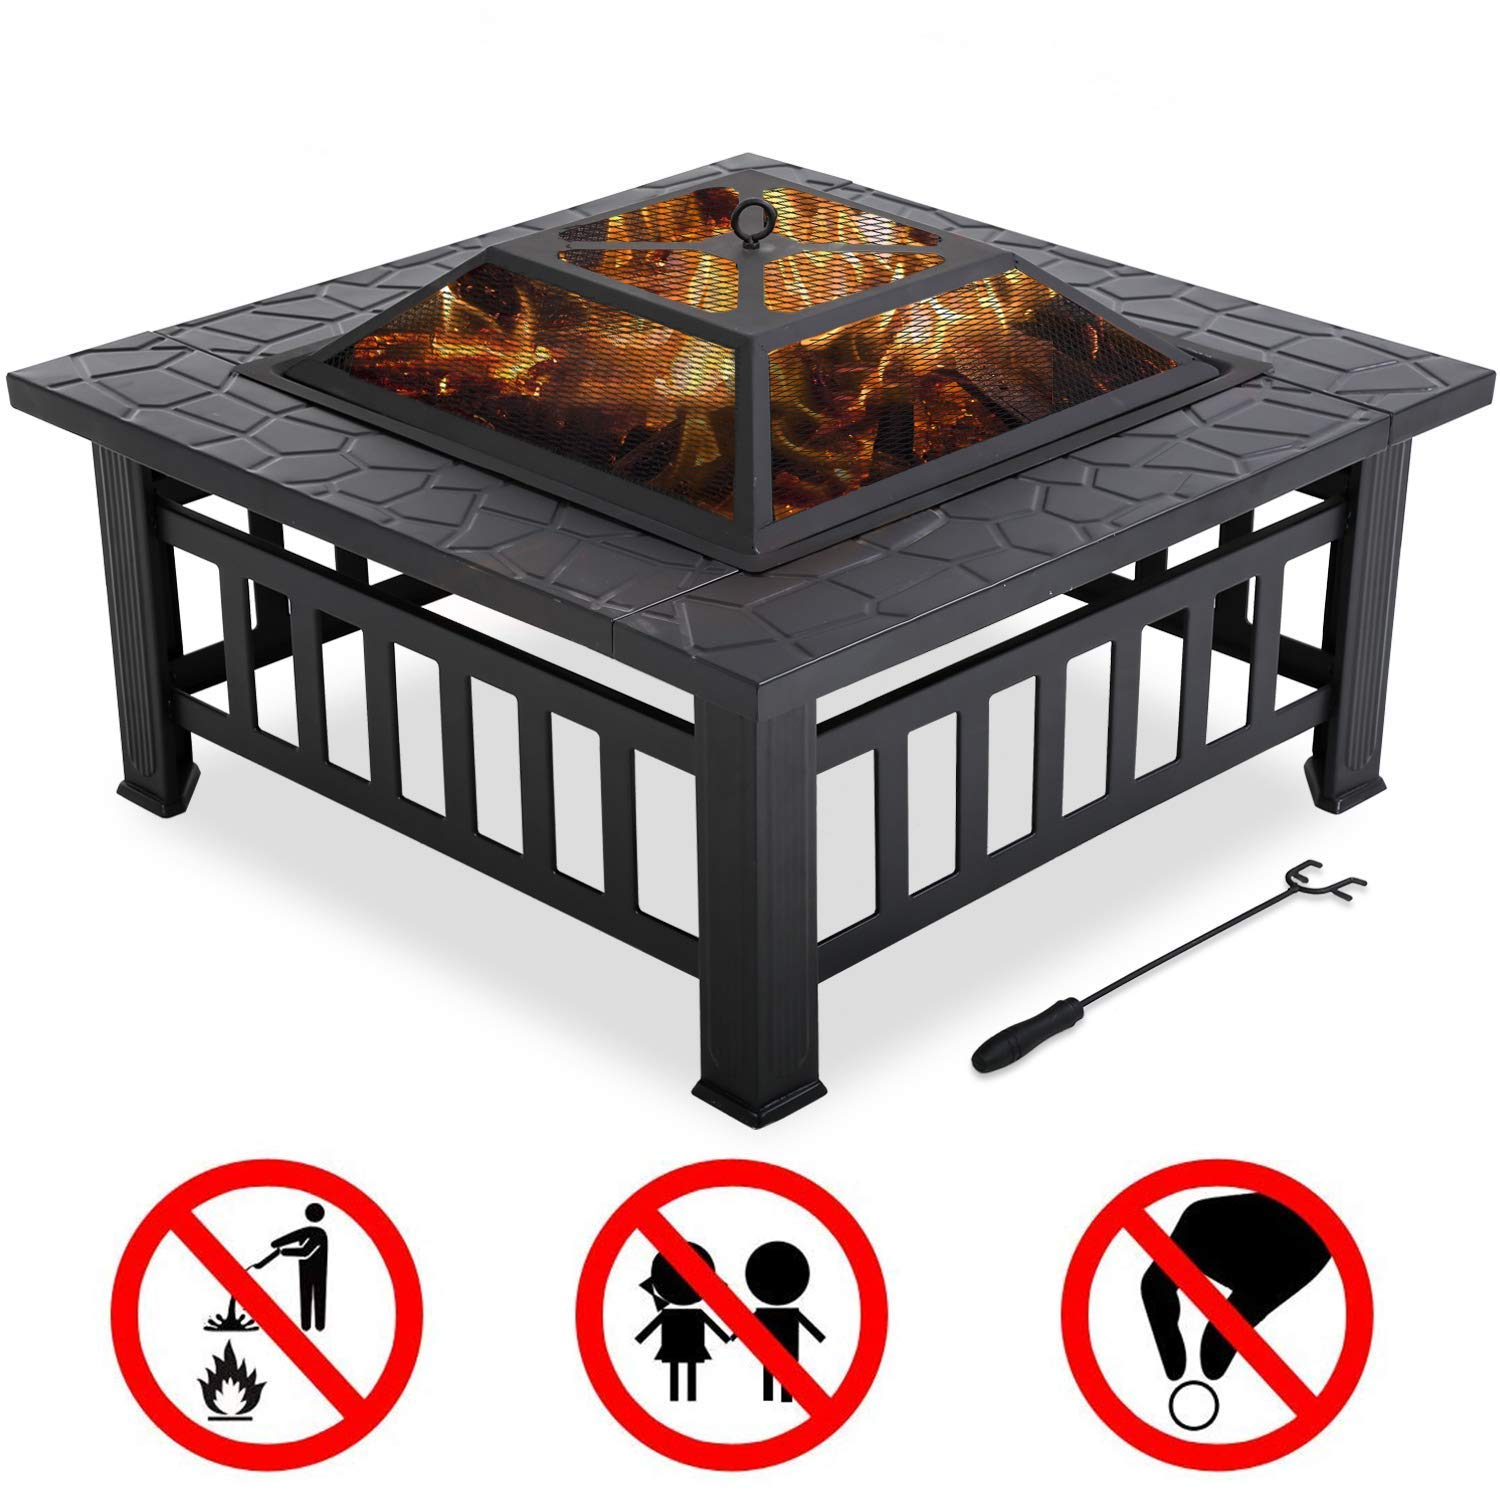 FDW Outdoor fire Pit for Wood 32'' Metal firepit for Patio Wood Burning Fireplace Square Garden Stove with Charcoal Rack, Poker & Mesh Cover for Camping Picnic Bonfire Backyard by FDW